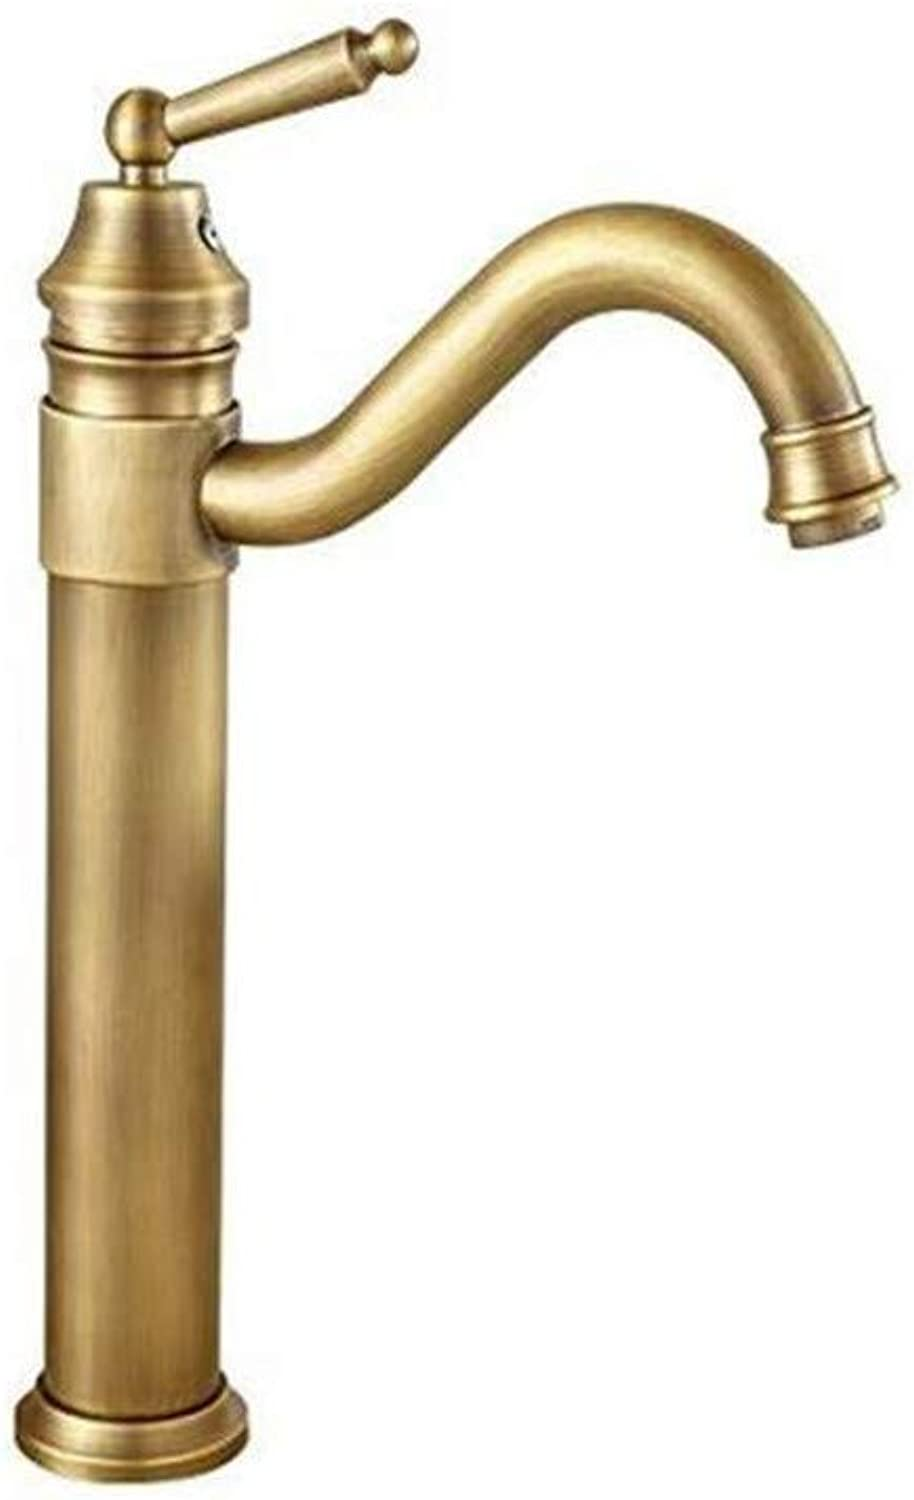 Classic Faucet Faucet Washbasin Mixer Brass Bathroom Sink Mixer Tap Water Hot and Cold Basin Wash Tap Bk03021